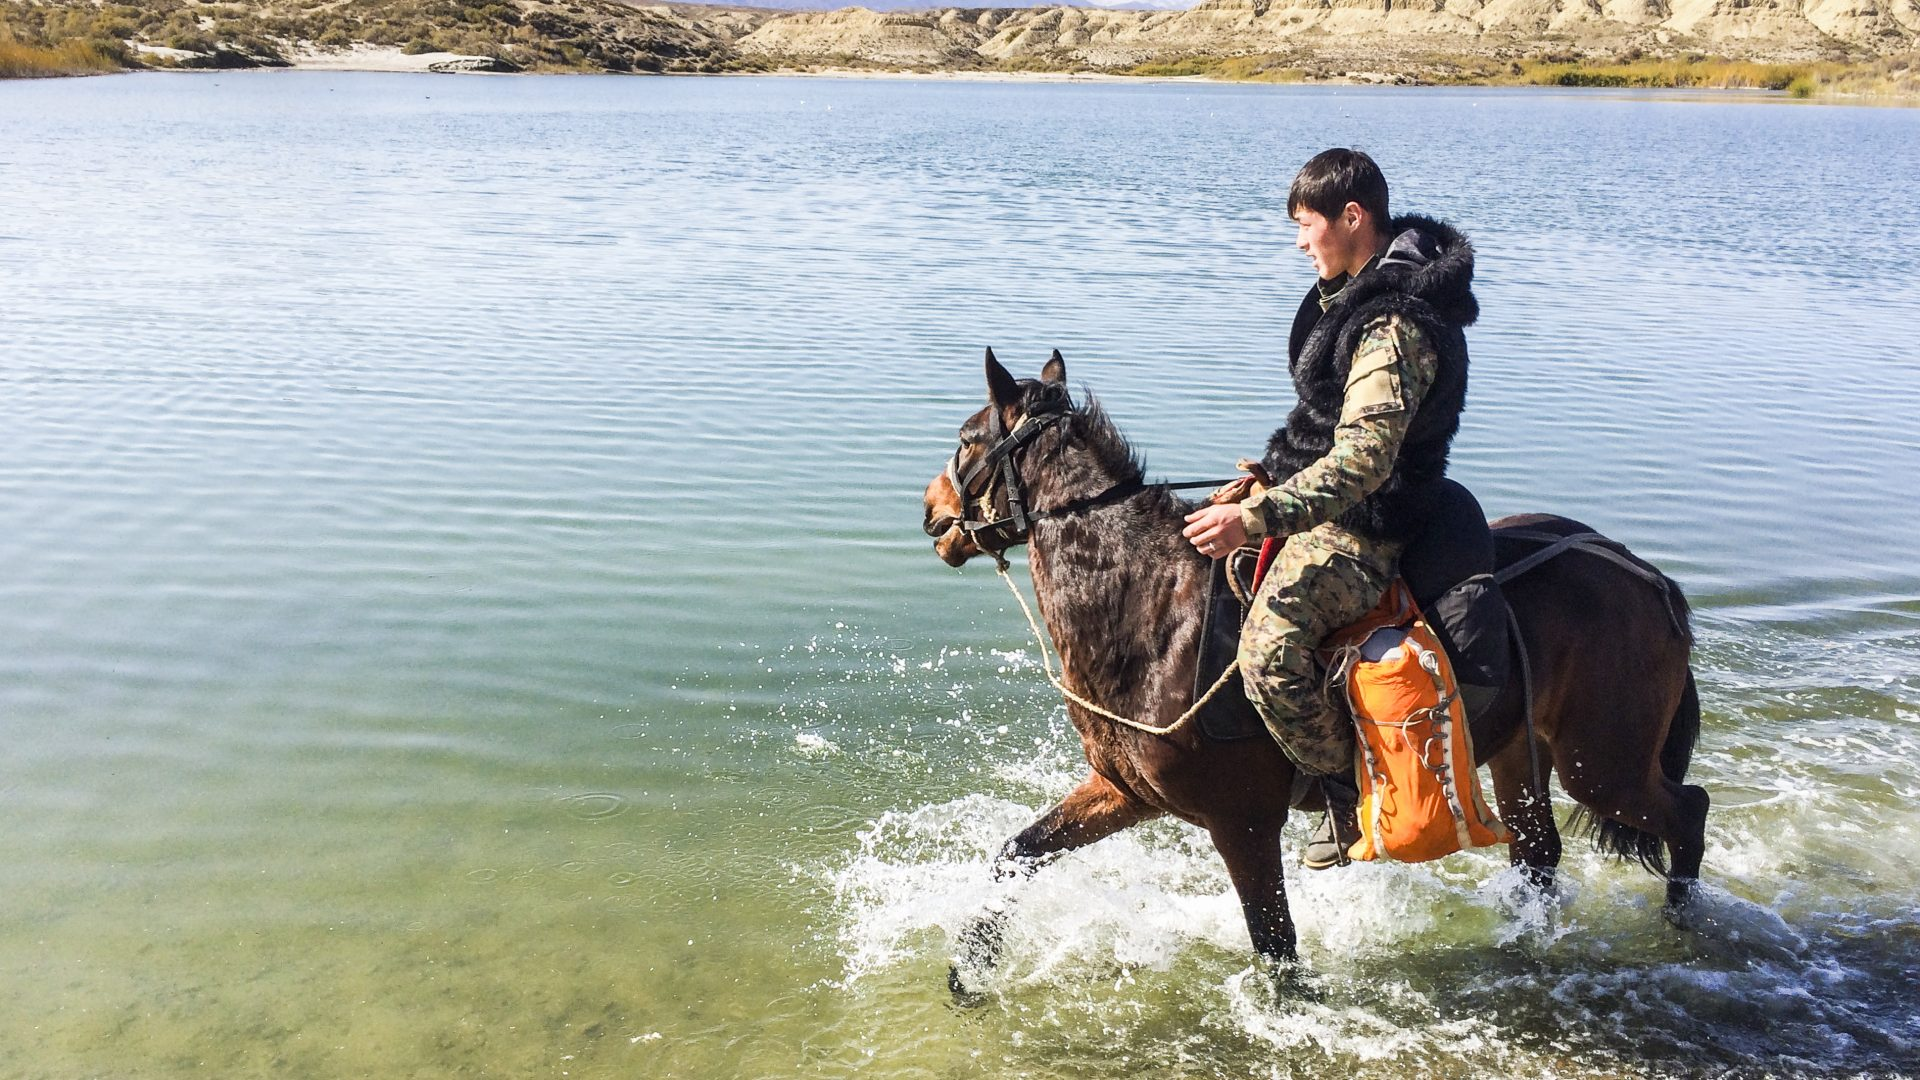 Man rides horse through water in Kyrgyzstan